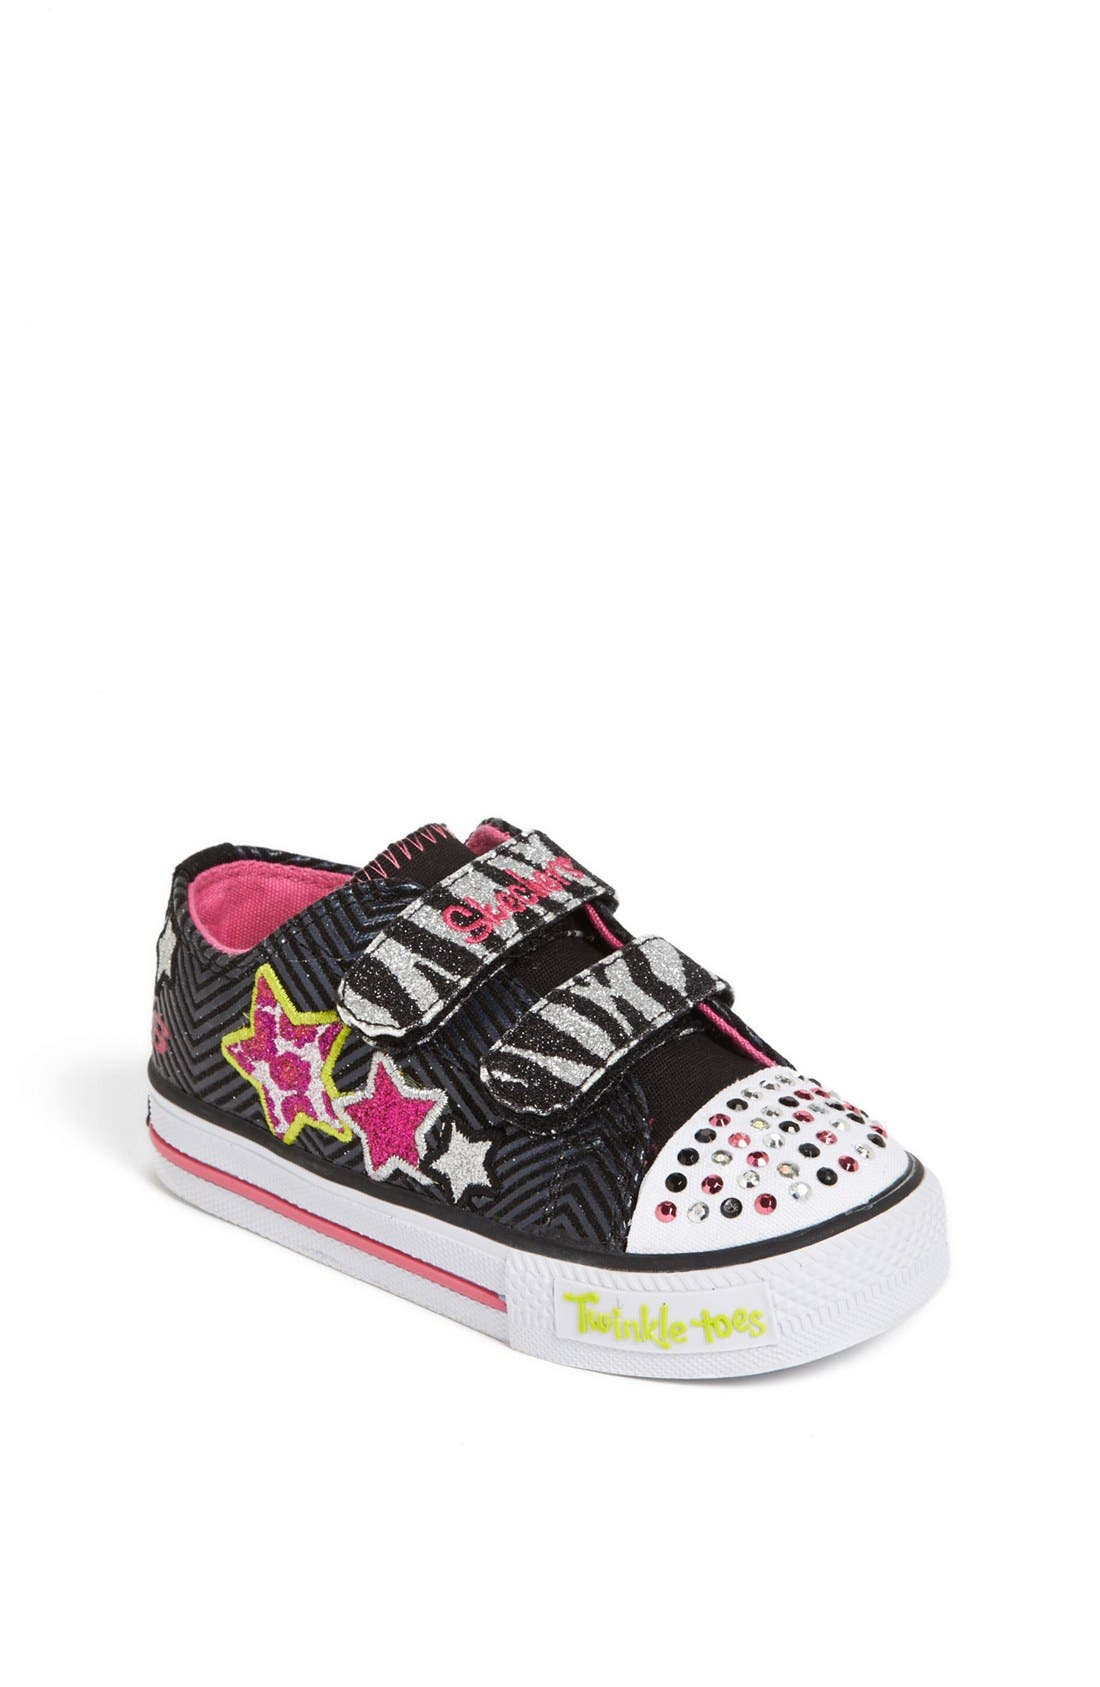 Alternate Image 1 Selected - SKECHERS 'Twinkle Toes - Wild Starlight' Light-Up Sneaker (Walker & Toddler)